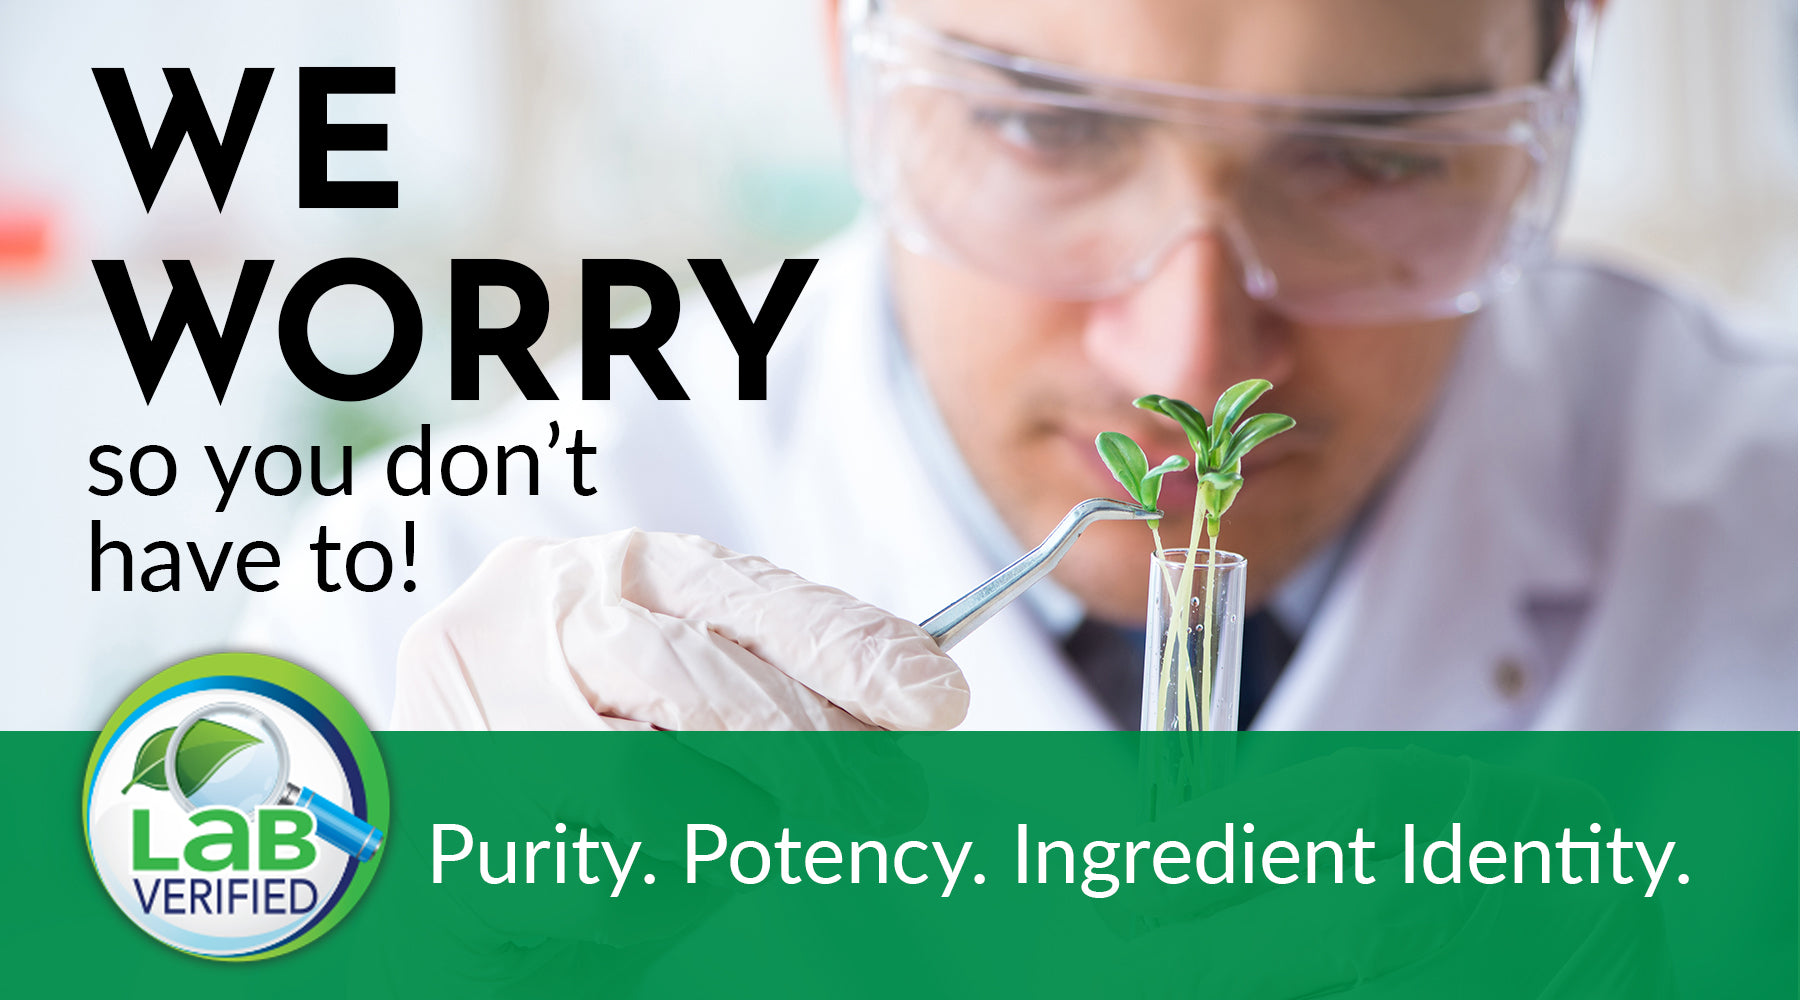 Scientifically tested supplements verified for purity, potency, and ingredient identity.